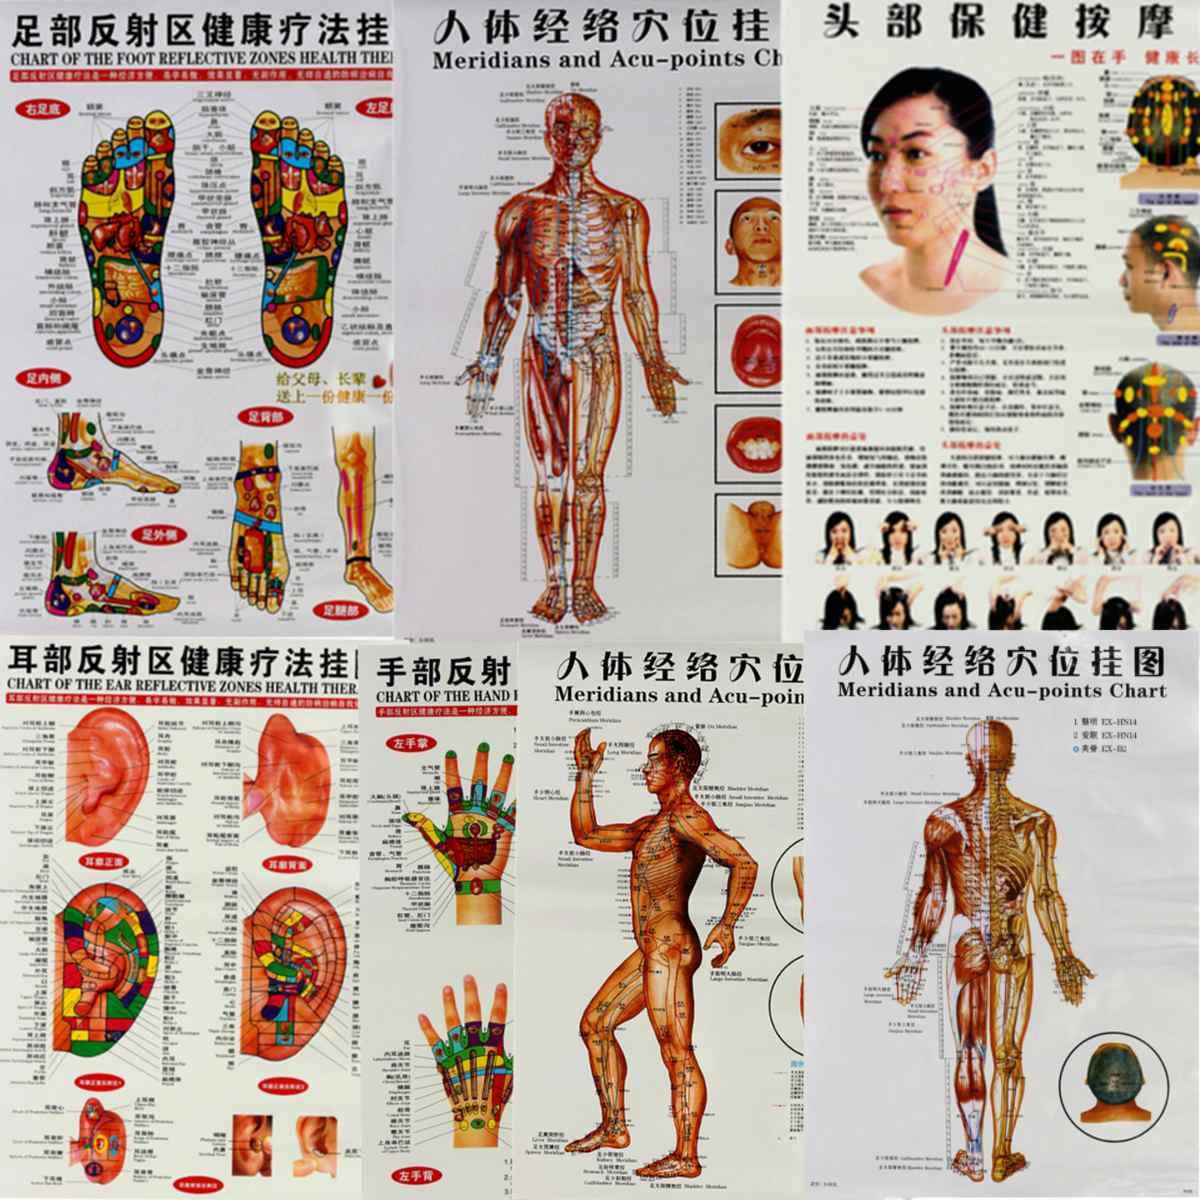 7Pcs/Set English Hand&Foot&Ear&Body Meridian Points Of Human Wall Chart Female /Male Acupuncture Massage Point Map Flipchart7Pcs/Set English Hand&Foot&Ear&Body Meridian Points Of Human Wall Chart Female /Male Acupuncture Massage Point Map Flipchart